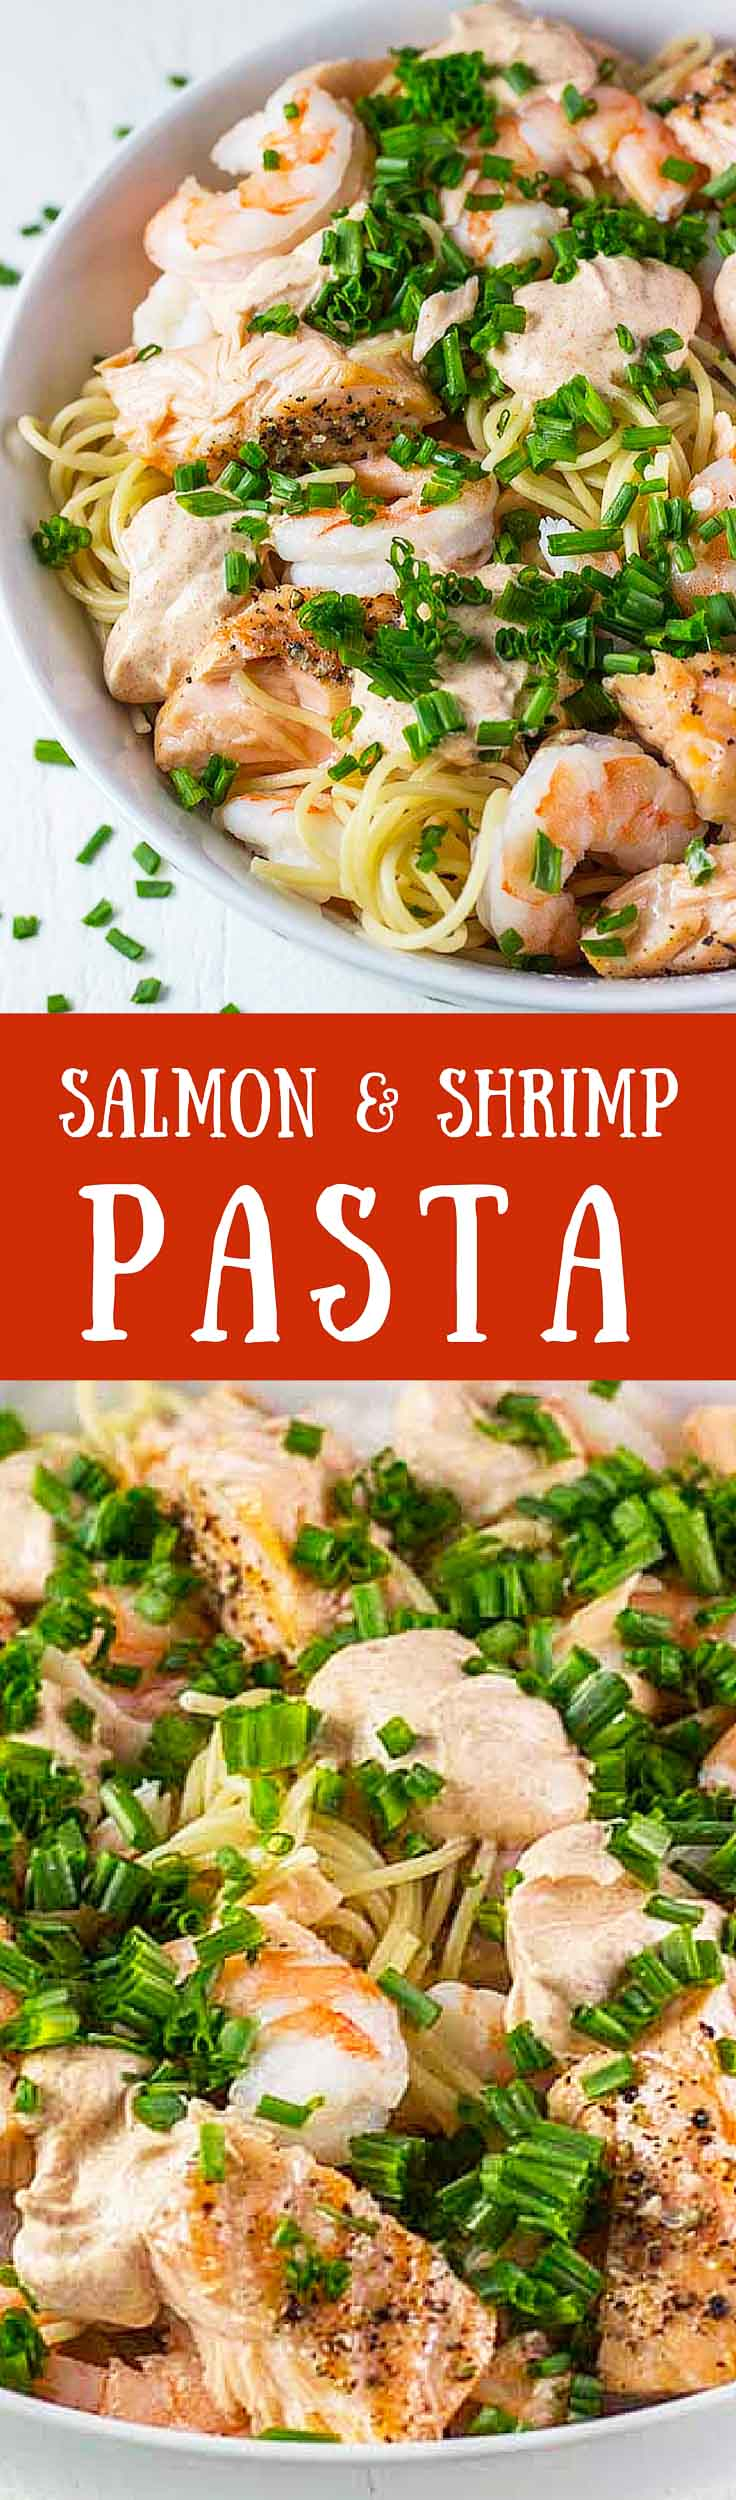 This Salmon & Shrimp Pasta is my favorite easy and healthy pasta recipe. It takes less than 20 minutes to make and is full of delicious protein and healthy fats │ TheFitBlog.com